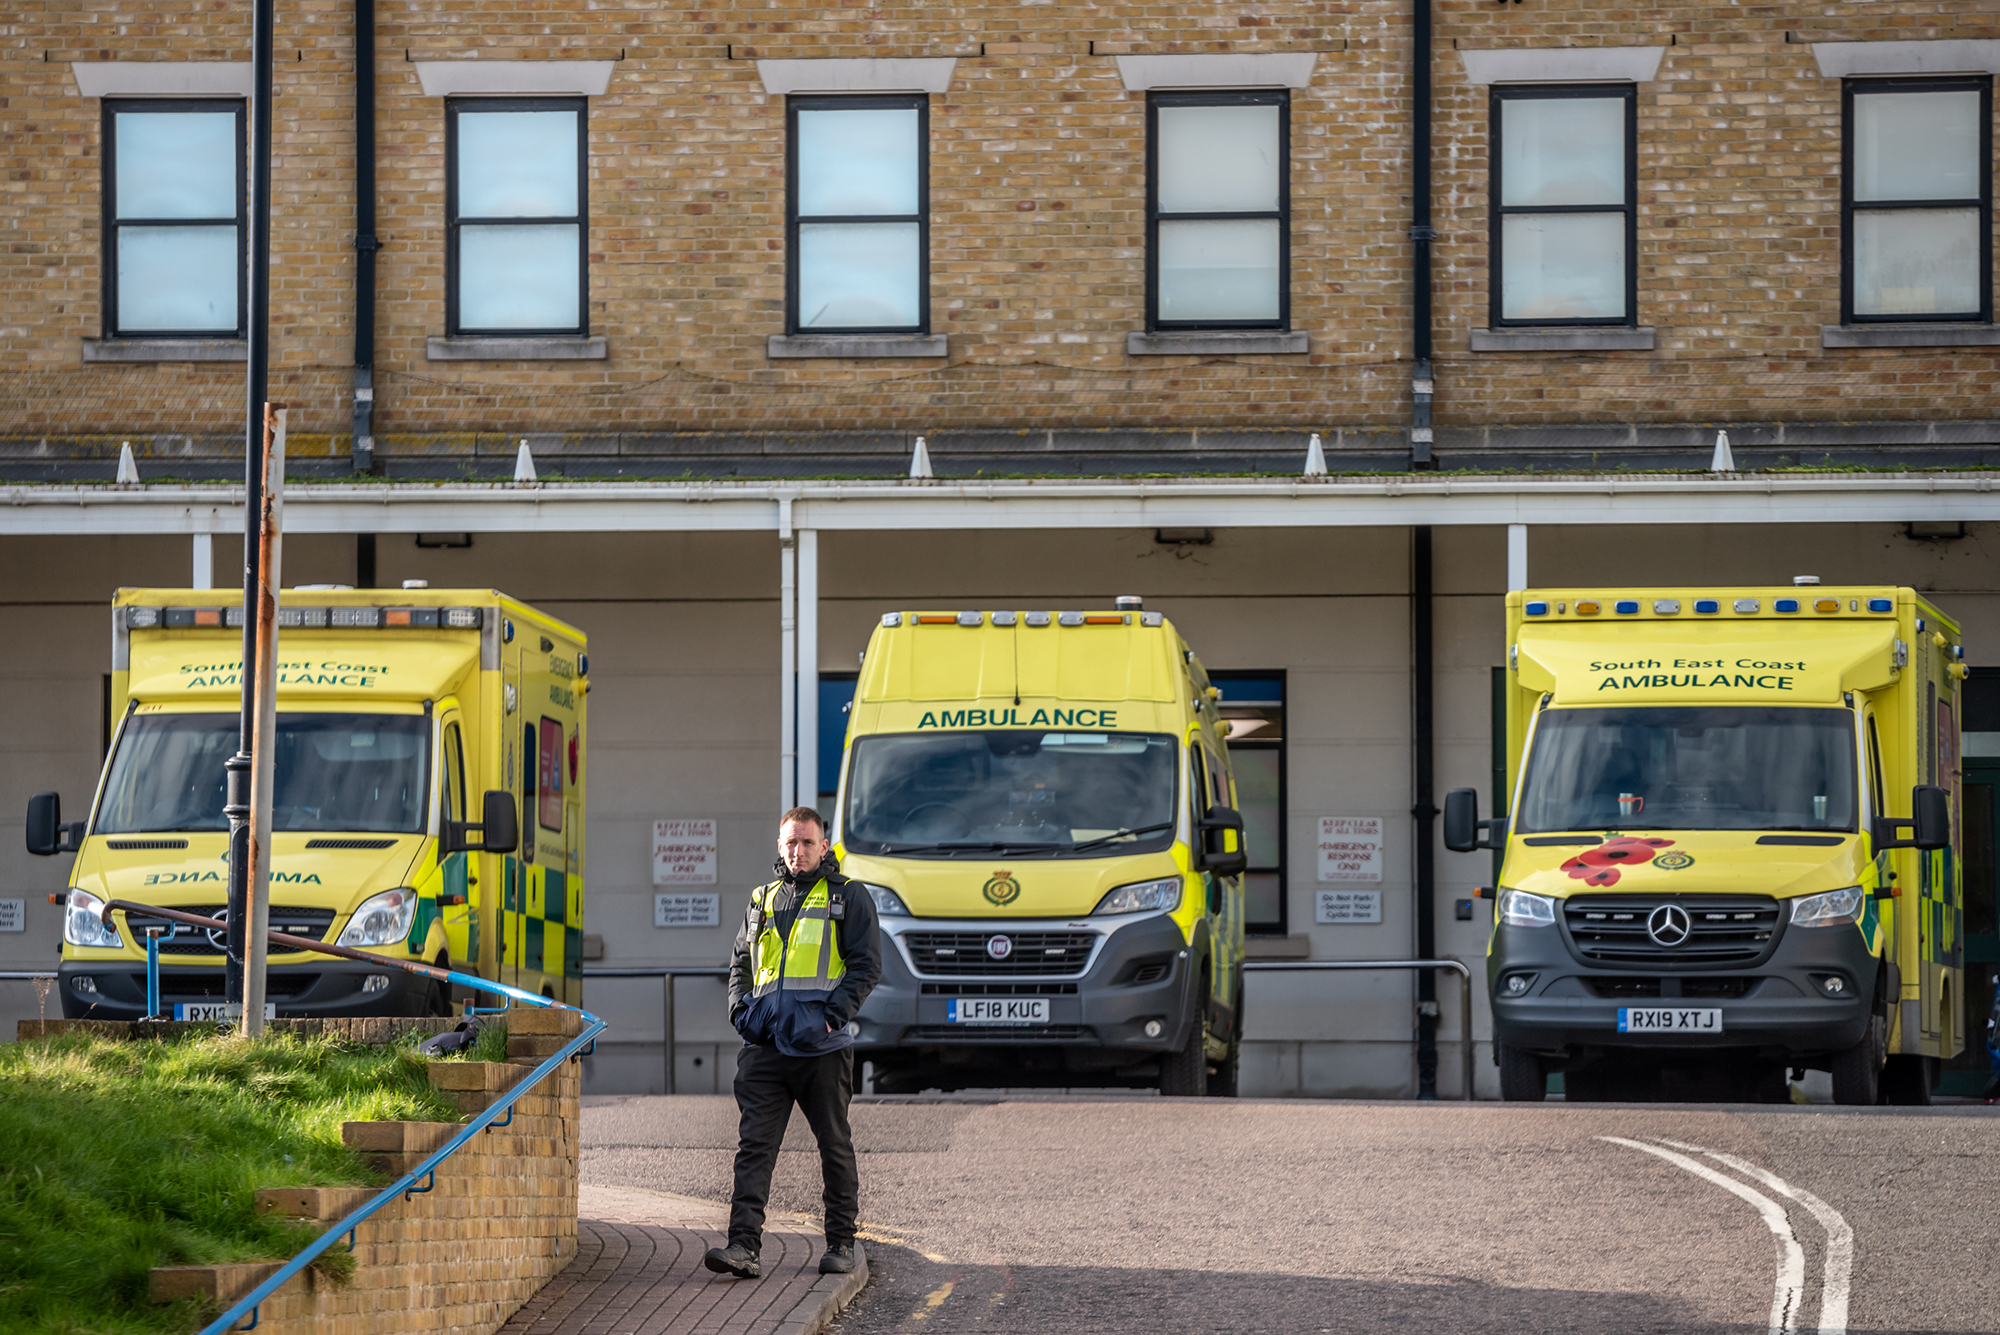 A man walks past ambulances parked outside the Royal Sussex County Hospital where a third person has tested positive for coronavirus in the UK on February 6.